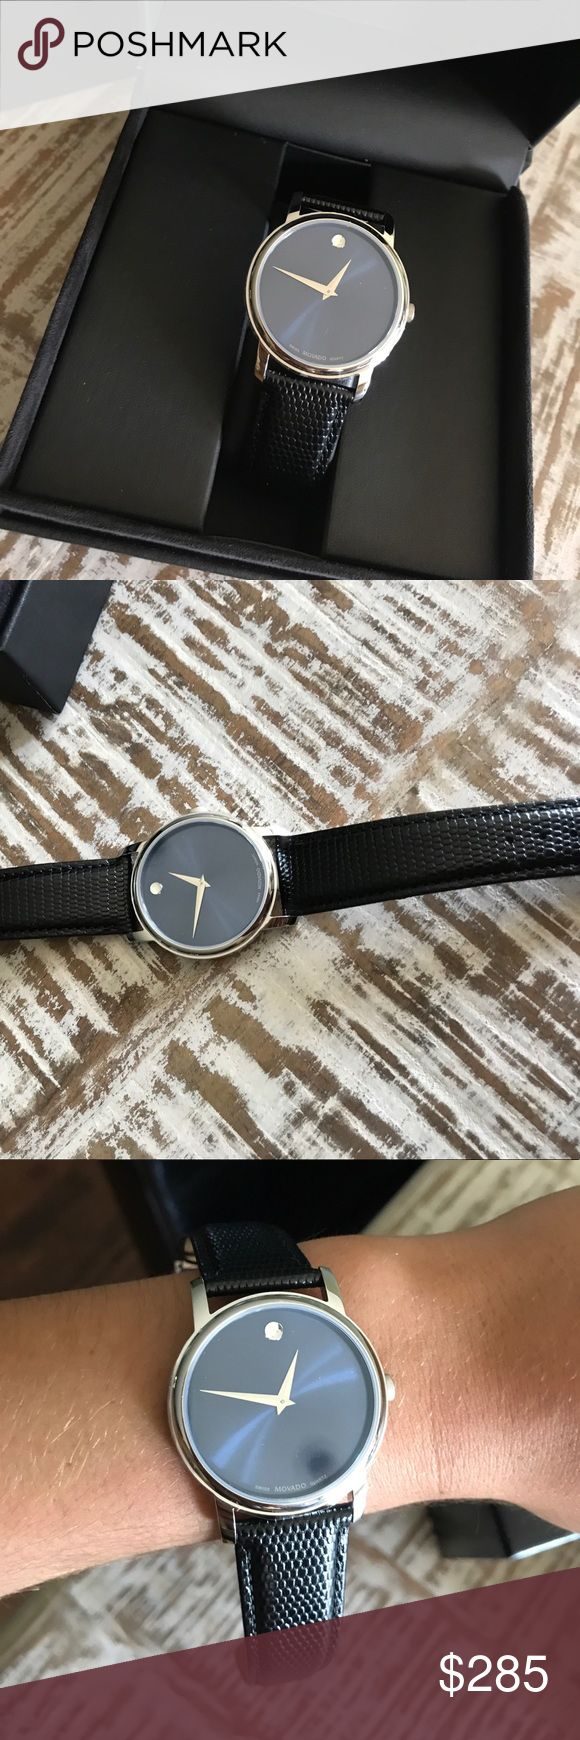 Brand new Movado watch Brand new Movado watch. Never worn. Just recently bought was given as a gift and they don't take returns. Movado Accessories Watches